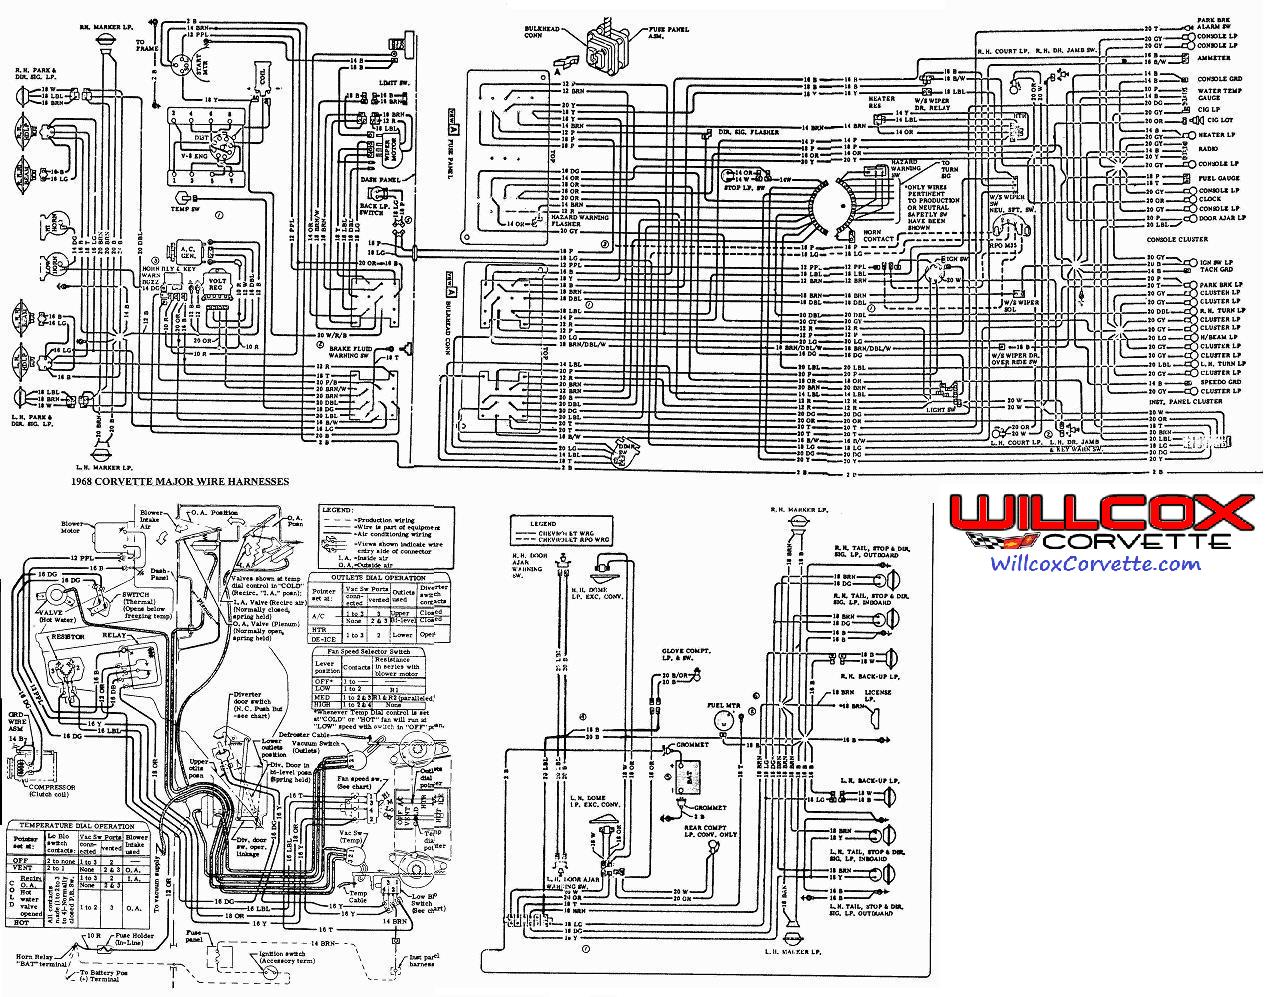 1968 corvette wire schematic 68 corvette from the aim willcox rh repairs willcoxcorvette com corvette wiring schematic laminated 1982 corvette wiring schematic